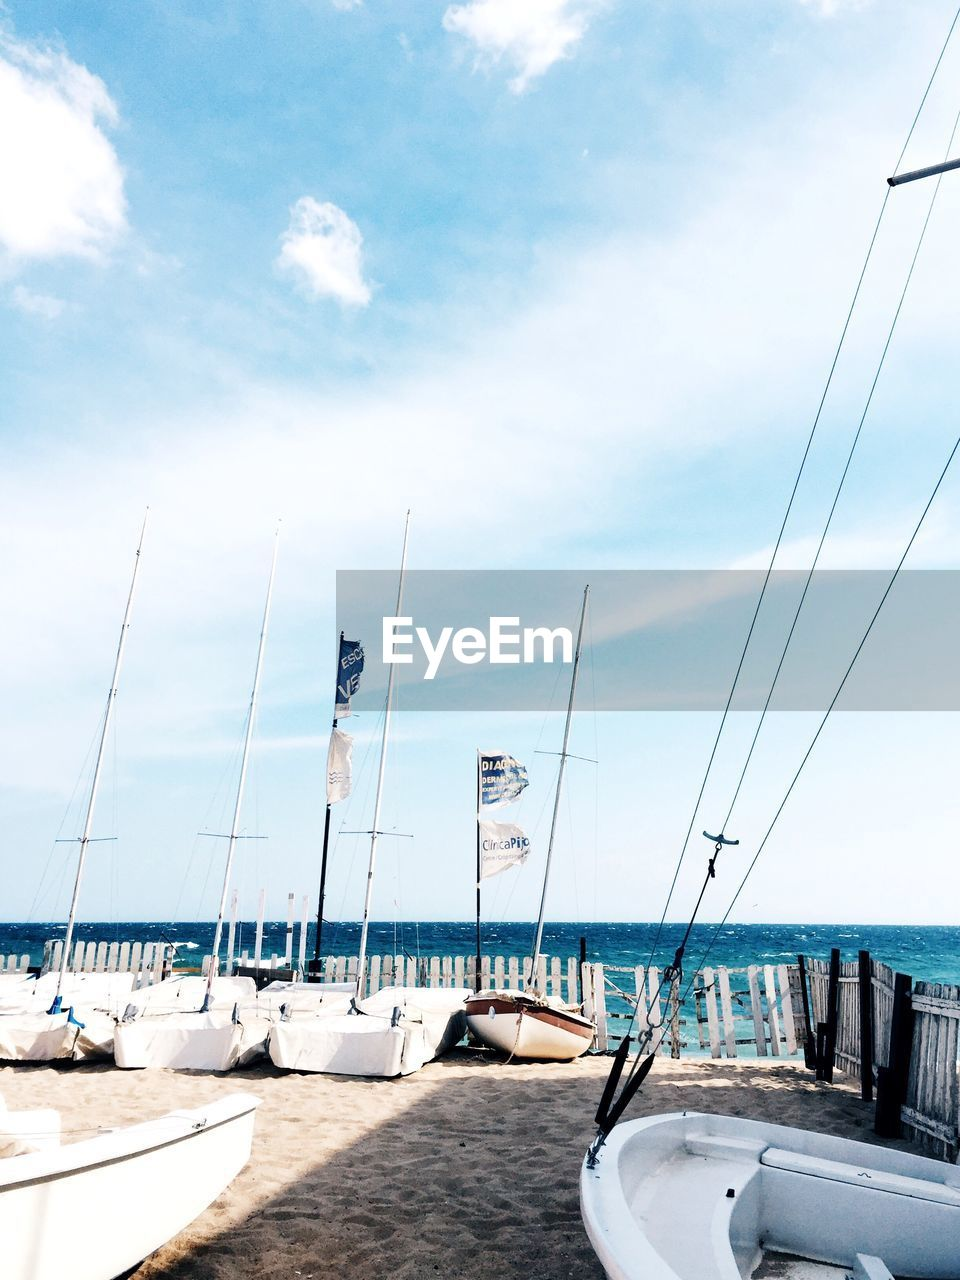 sea, water, sky, cloud - sky, nature, nautical vessel, day, flag, scenics, tranquil scene, no people, outdoors, beauty in nature, tranquility, sunlight, horizon over water, beach, sailboat, mast, yacht